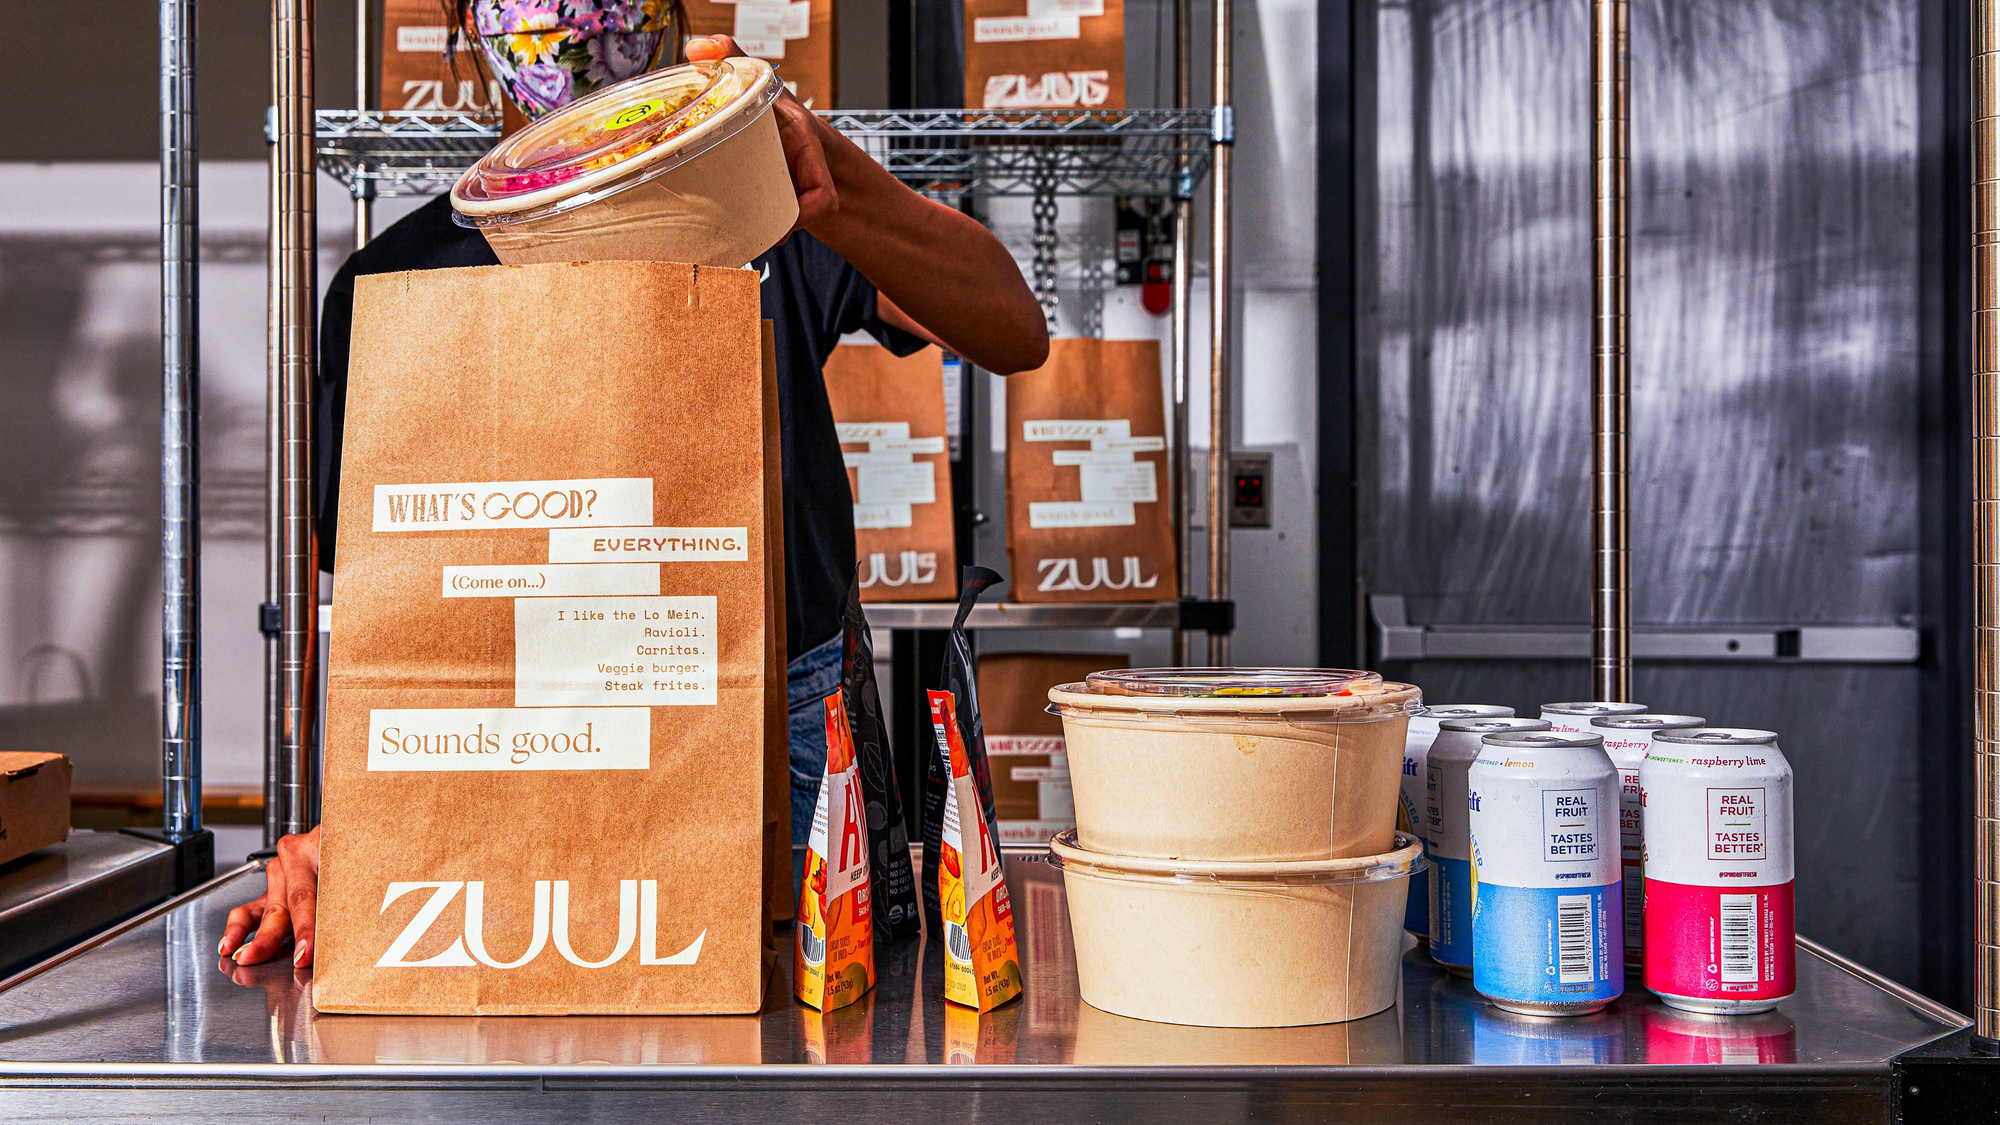 NYC-based original Ghost Kitchen Zuul looks to offer a premium model to drive per delivery costs to <$1